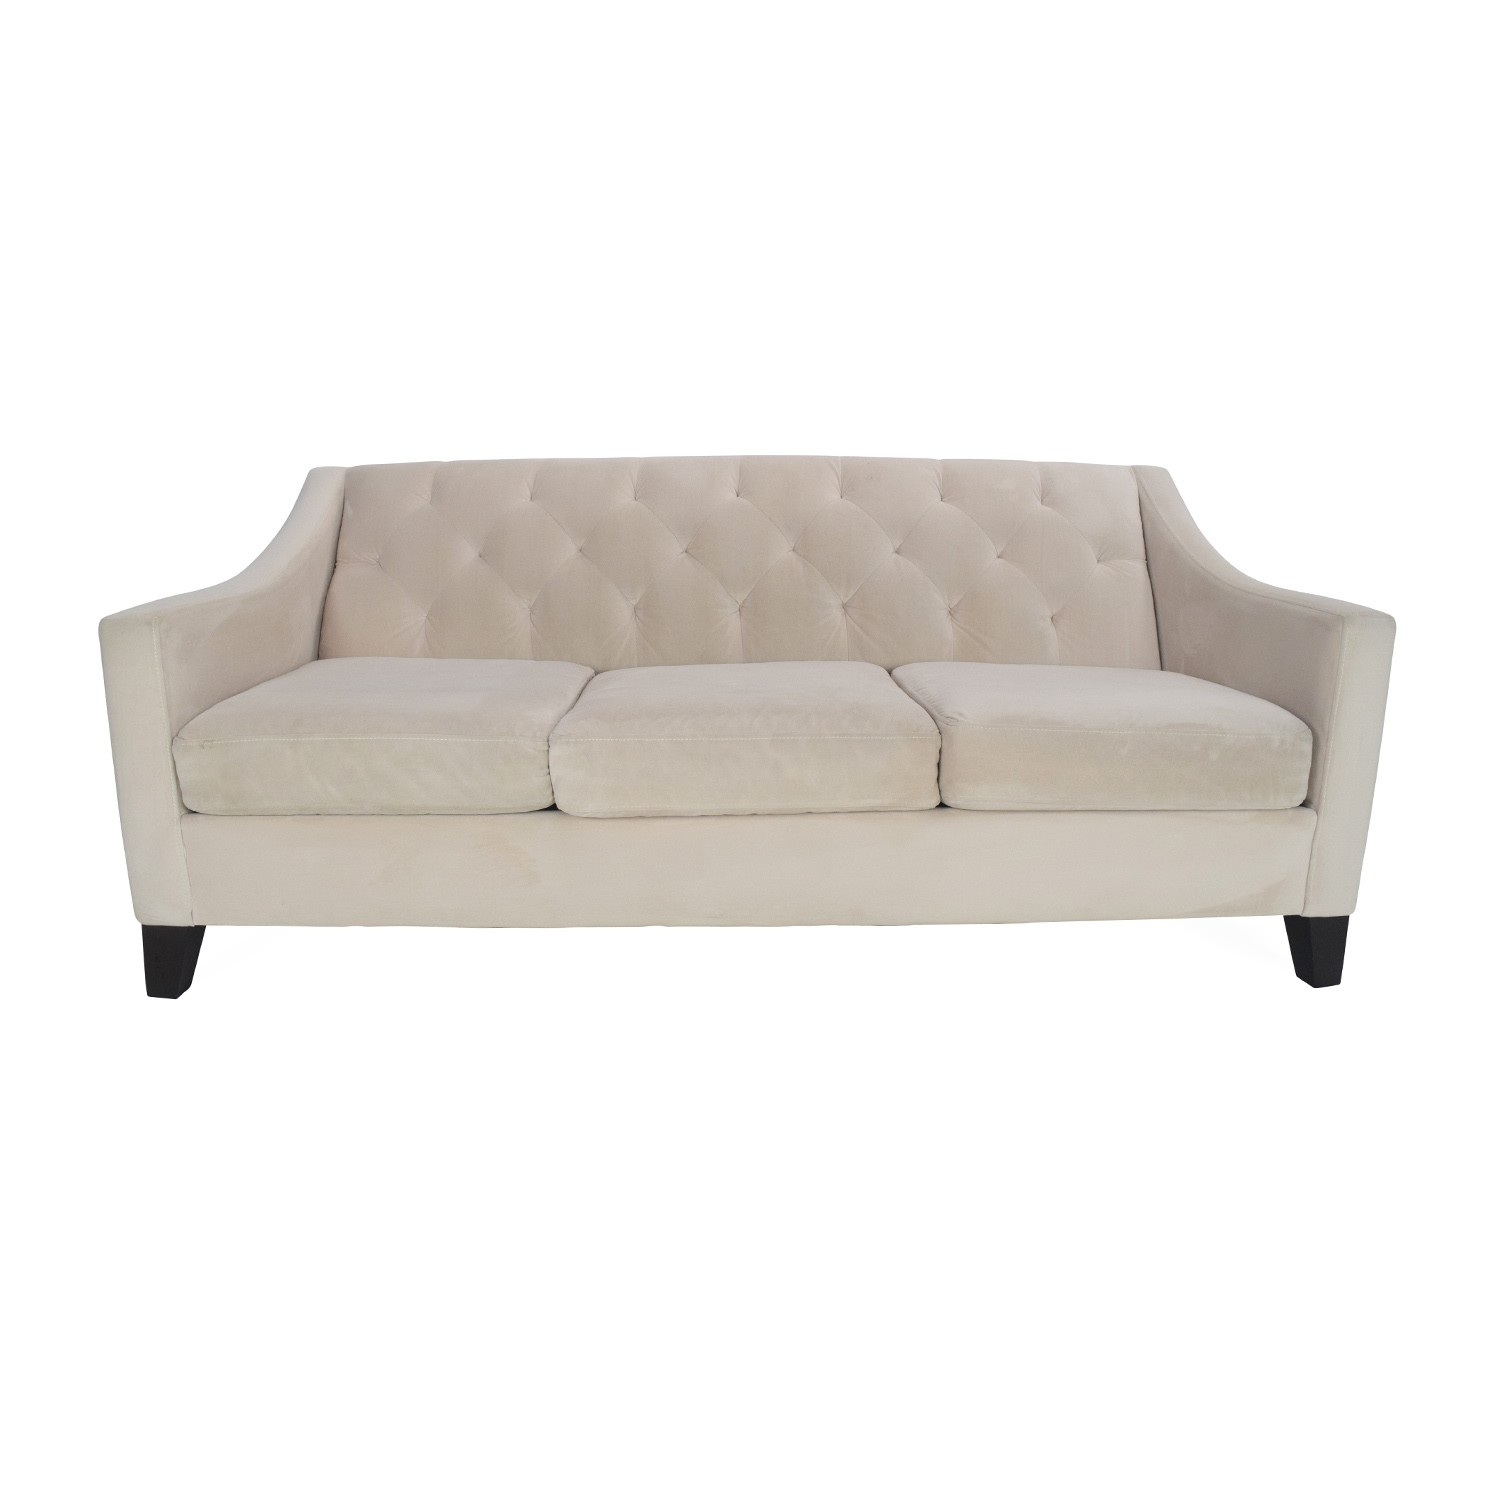 Macys Chloe sofa Stunning Off Max Home Furniture Macys Chloe Tufted sofa sofas Photo